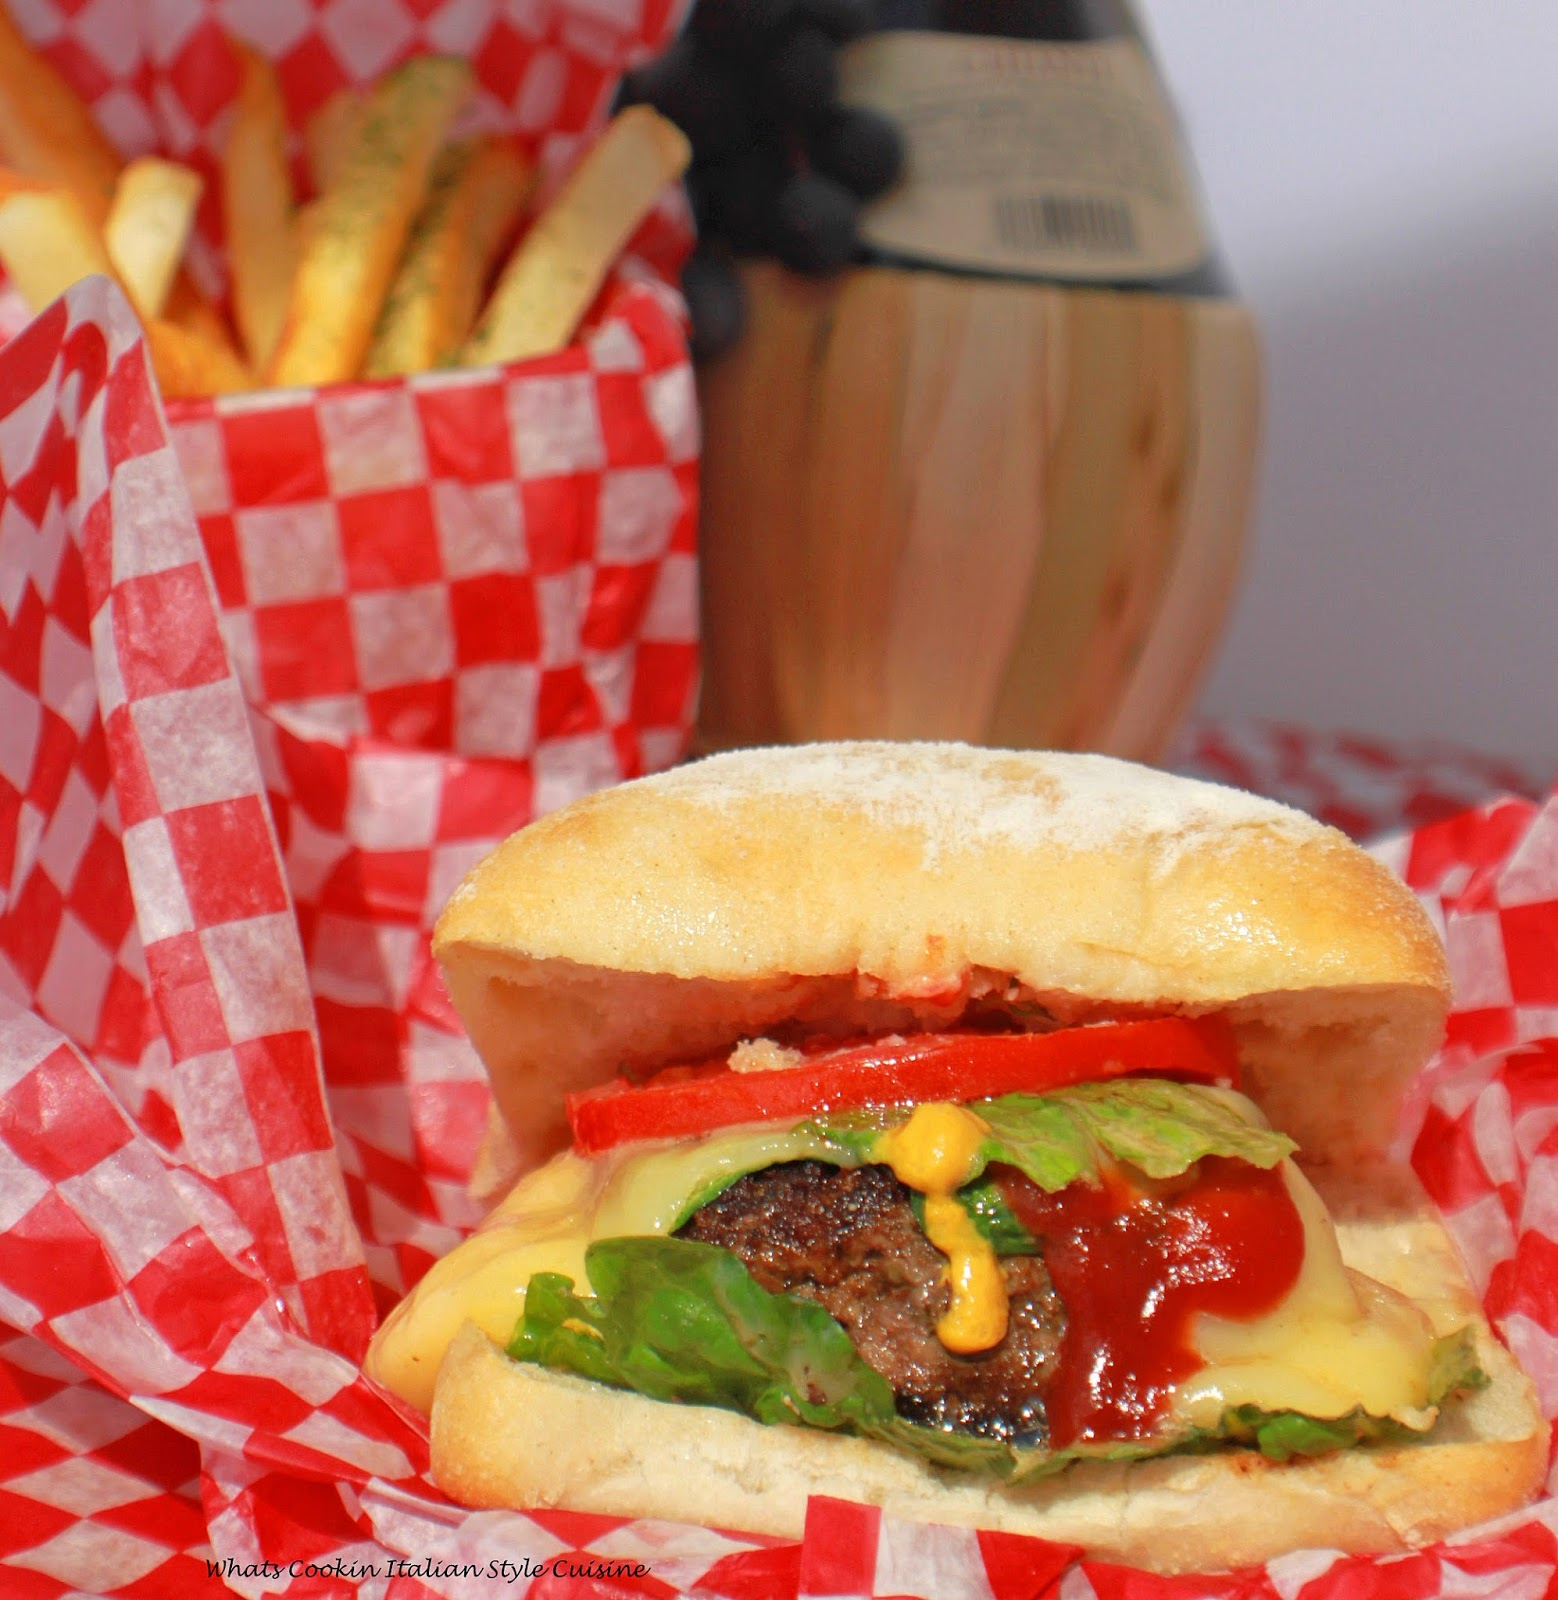 this is an Italian seasoned beef burger in a ciabatta bread roll pillow soft hamburger better than any fast food burger. This burger has lettuce tomato condiments, cheeses, and bursting with the best Italian flavors with french fries in a red and white checkerboard paper